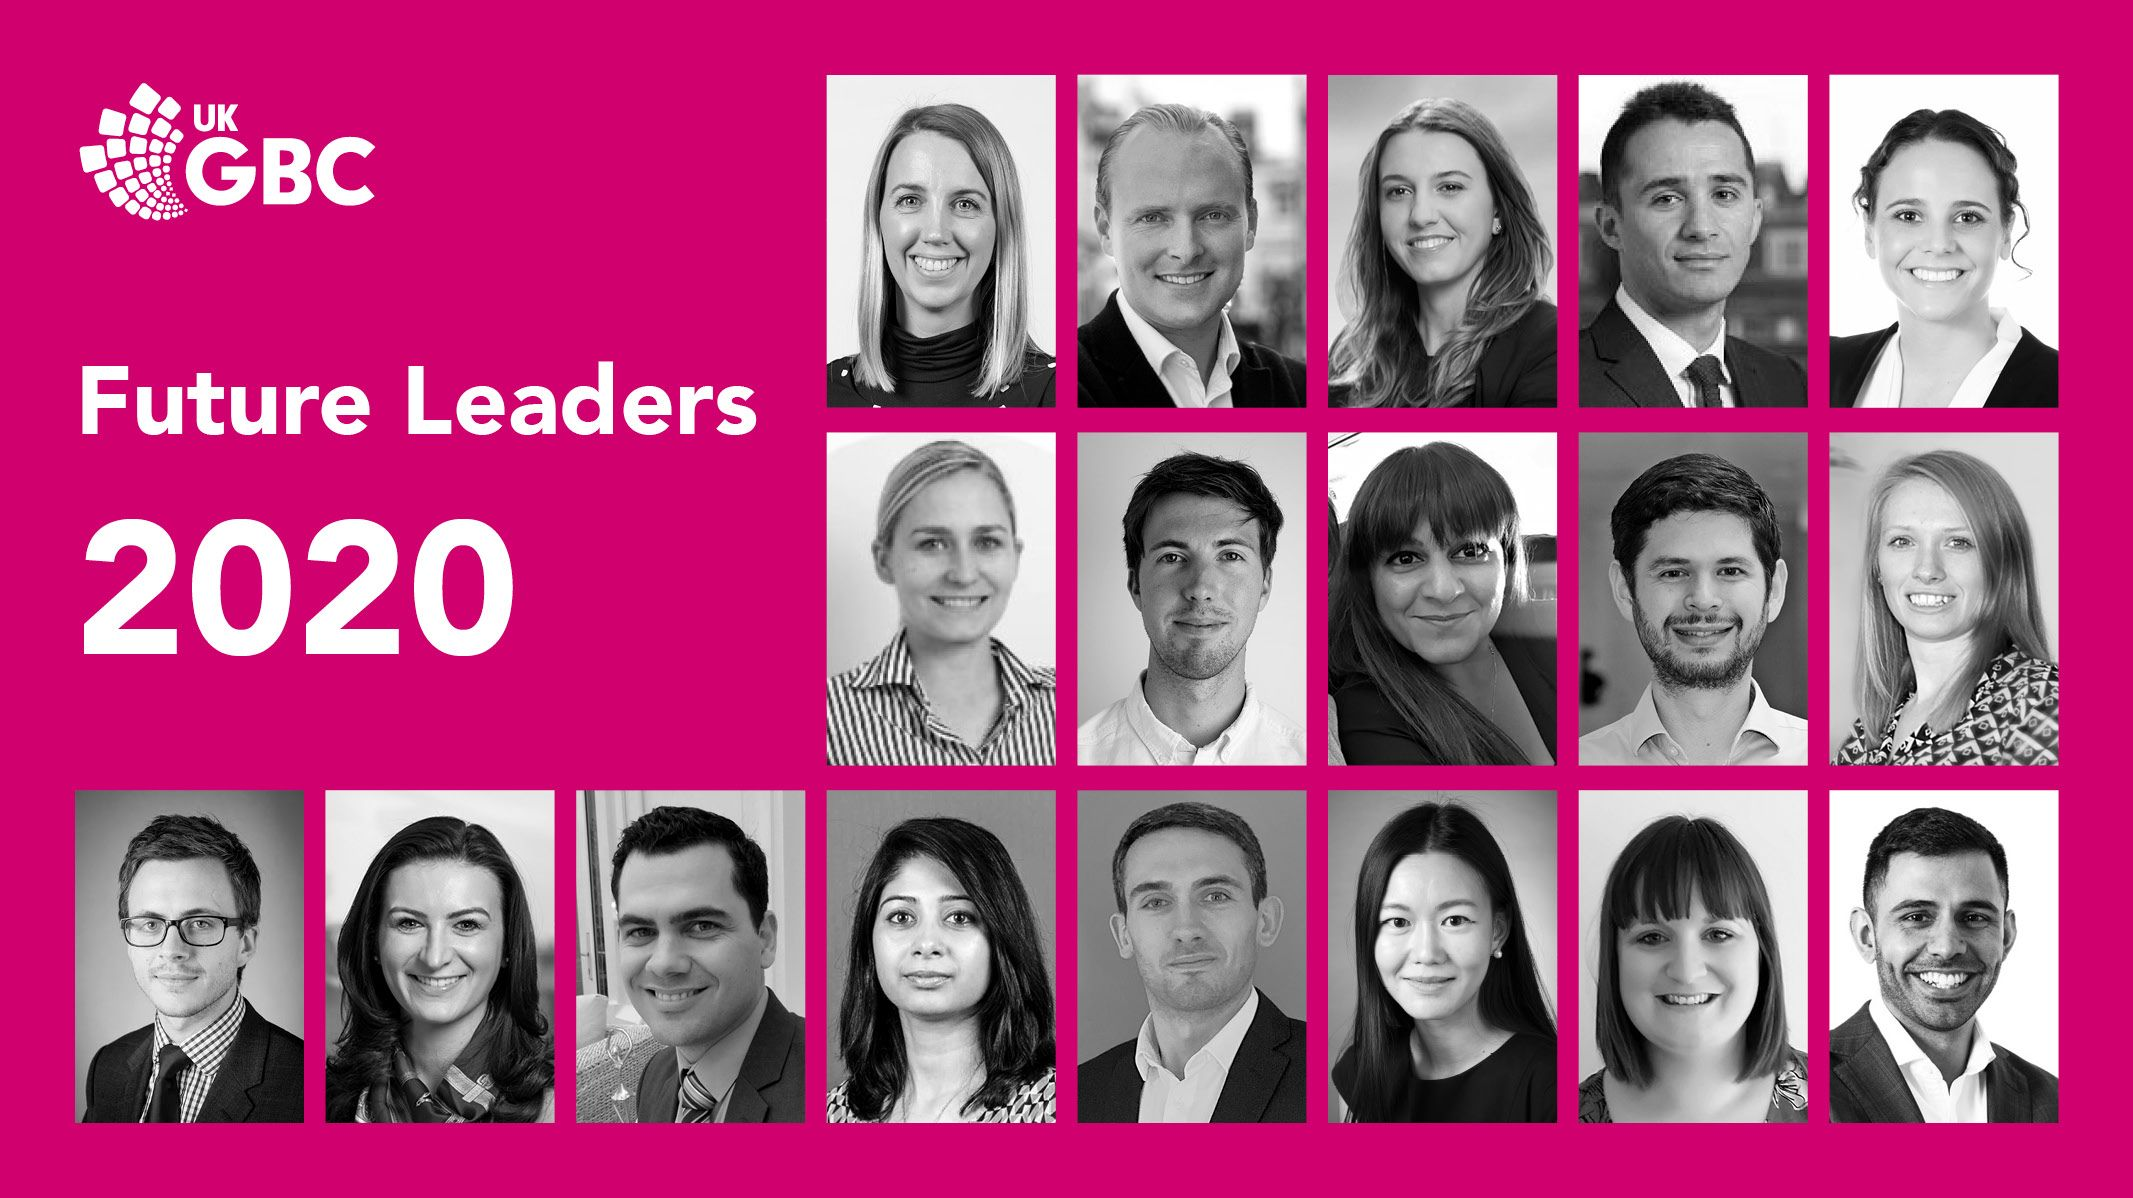 UKGBC announces 2020 Future Leaders